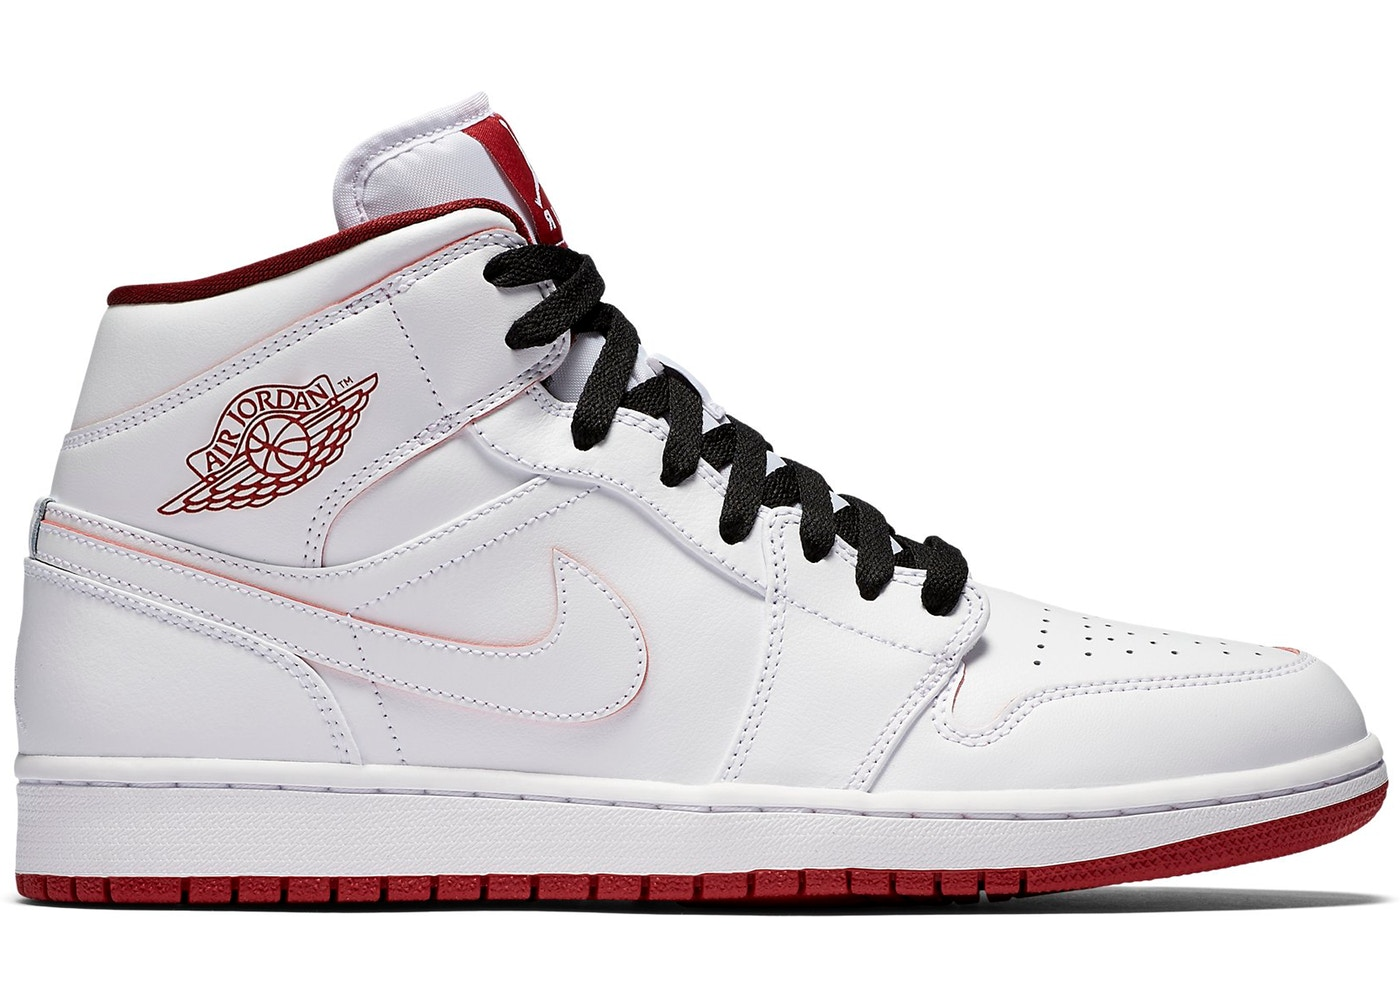 0fc2f0d5044 Sell. or Ask. Size  9.5. View All Bids. Jordan 1 Retro Mid White Gym Red  Black